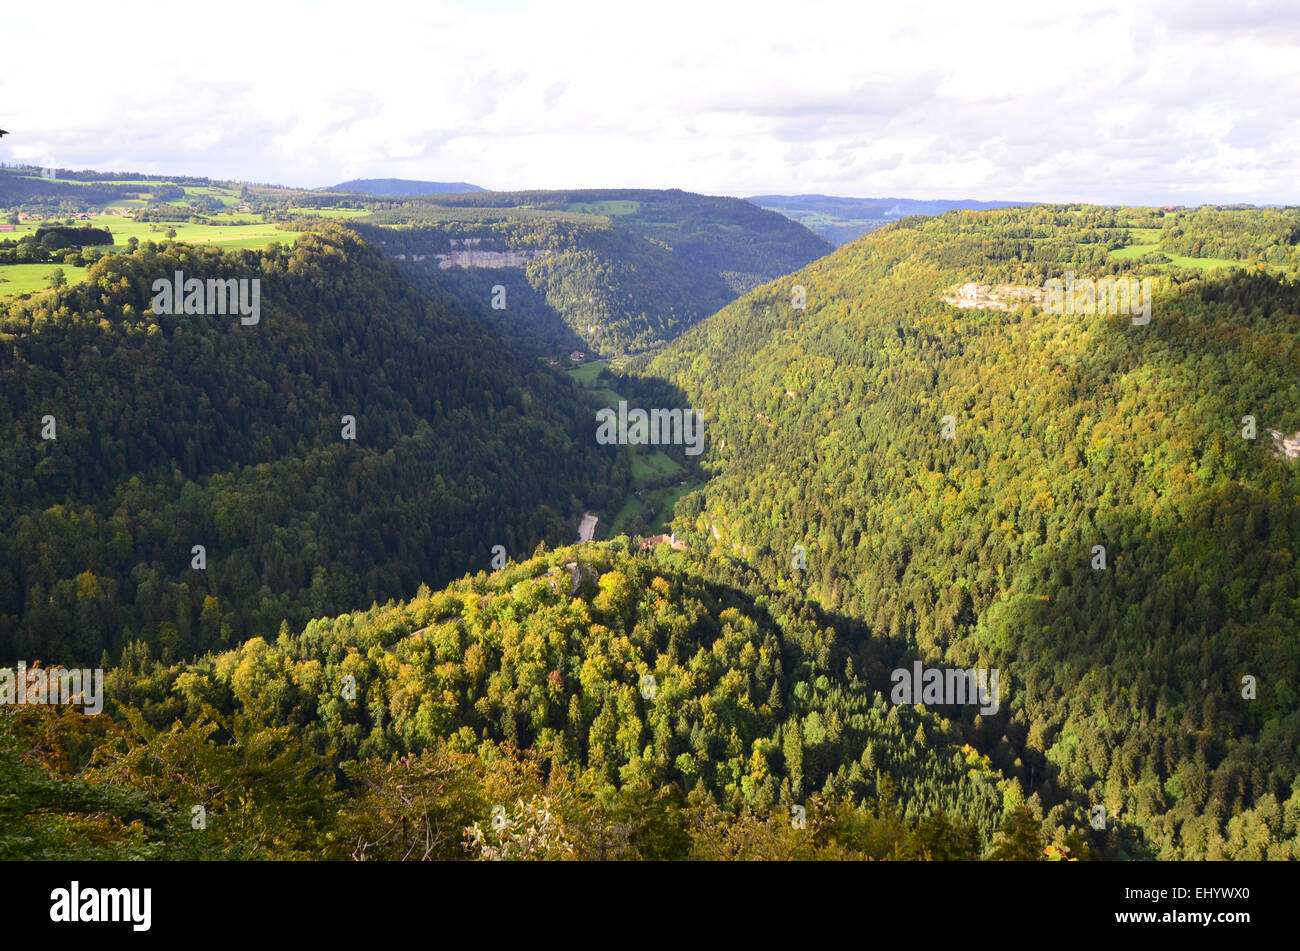 France, Europe, Jura, cirque de consolation, valley kettle, view, roche you pretre, departement doubs, wood, forest, - Stock Image